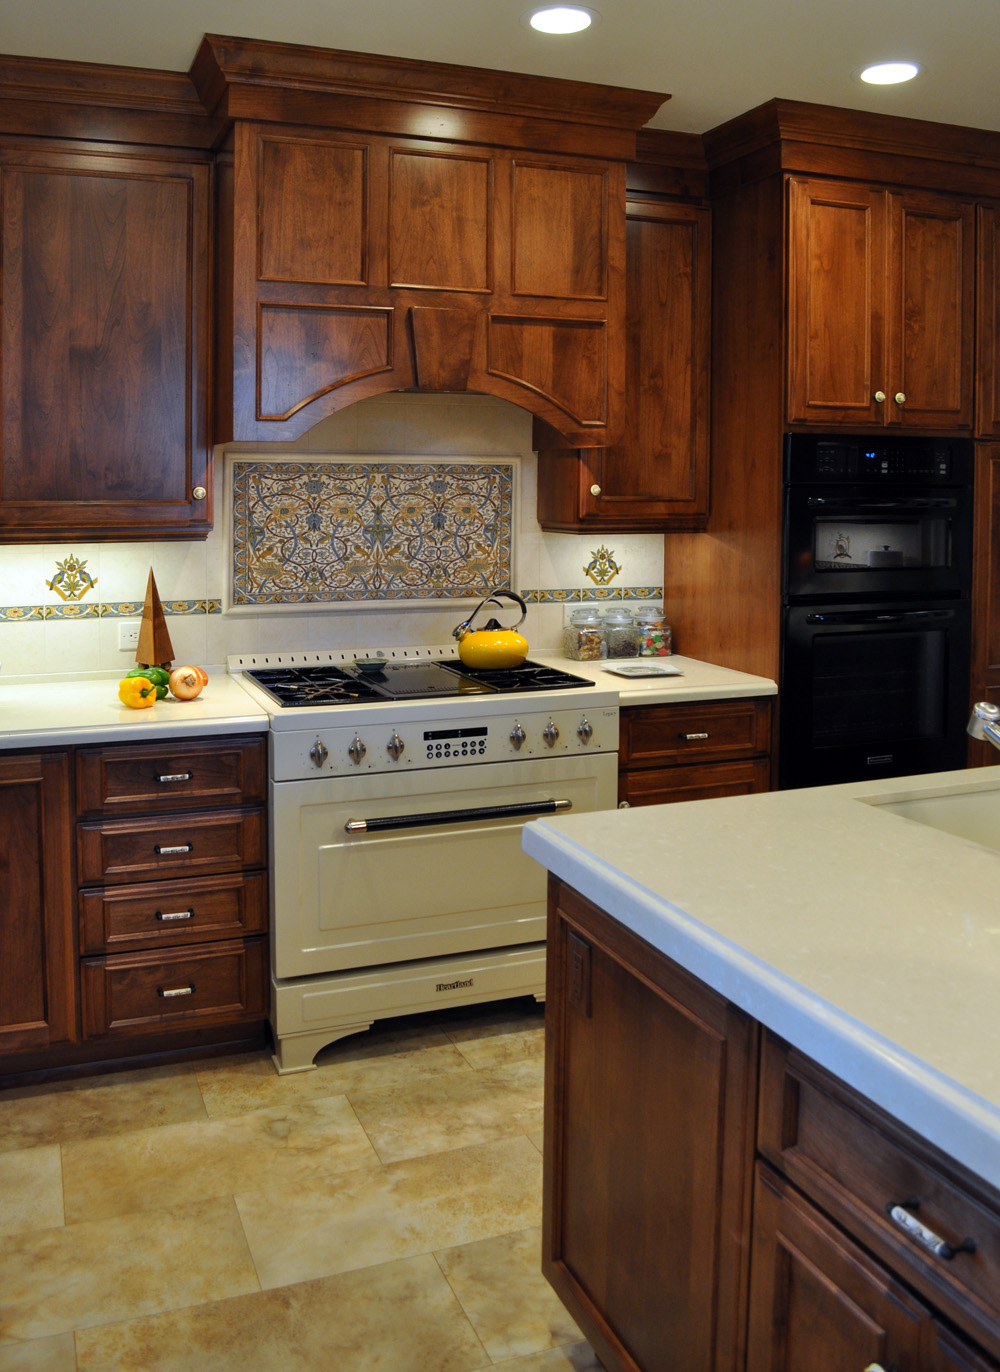 Stoneimpressions blog october 2011 - Decorative tile for backsplash in kitchens ...